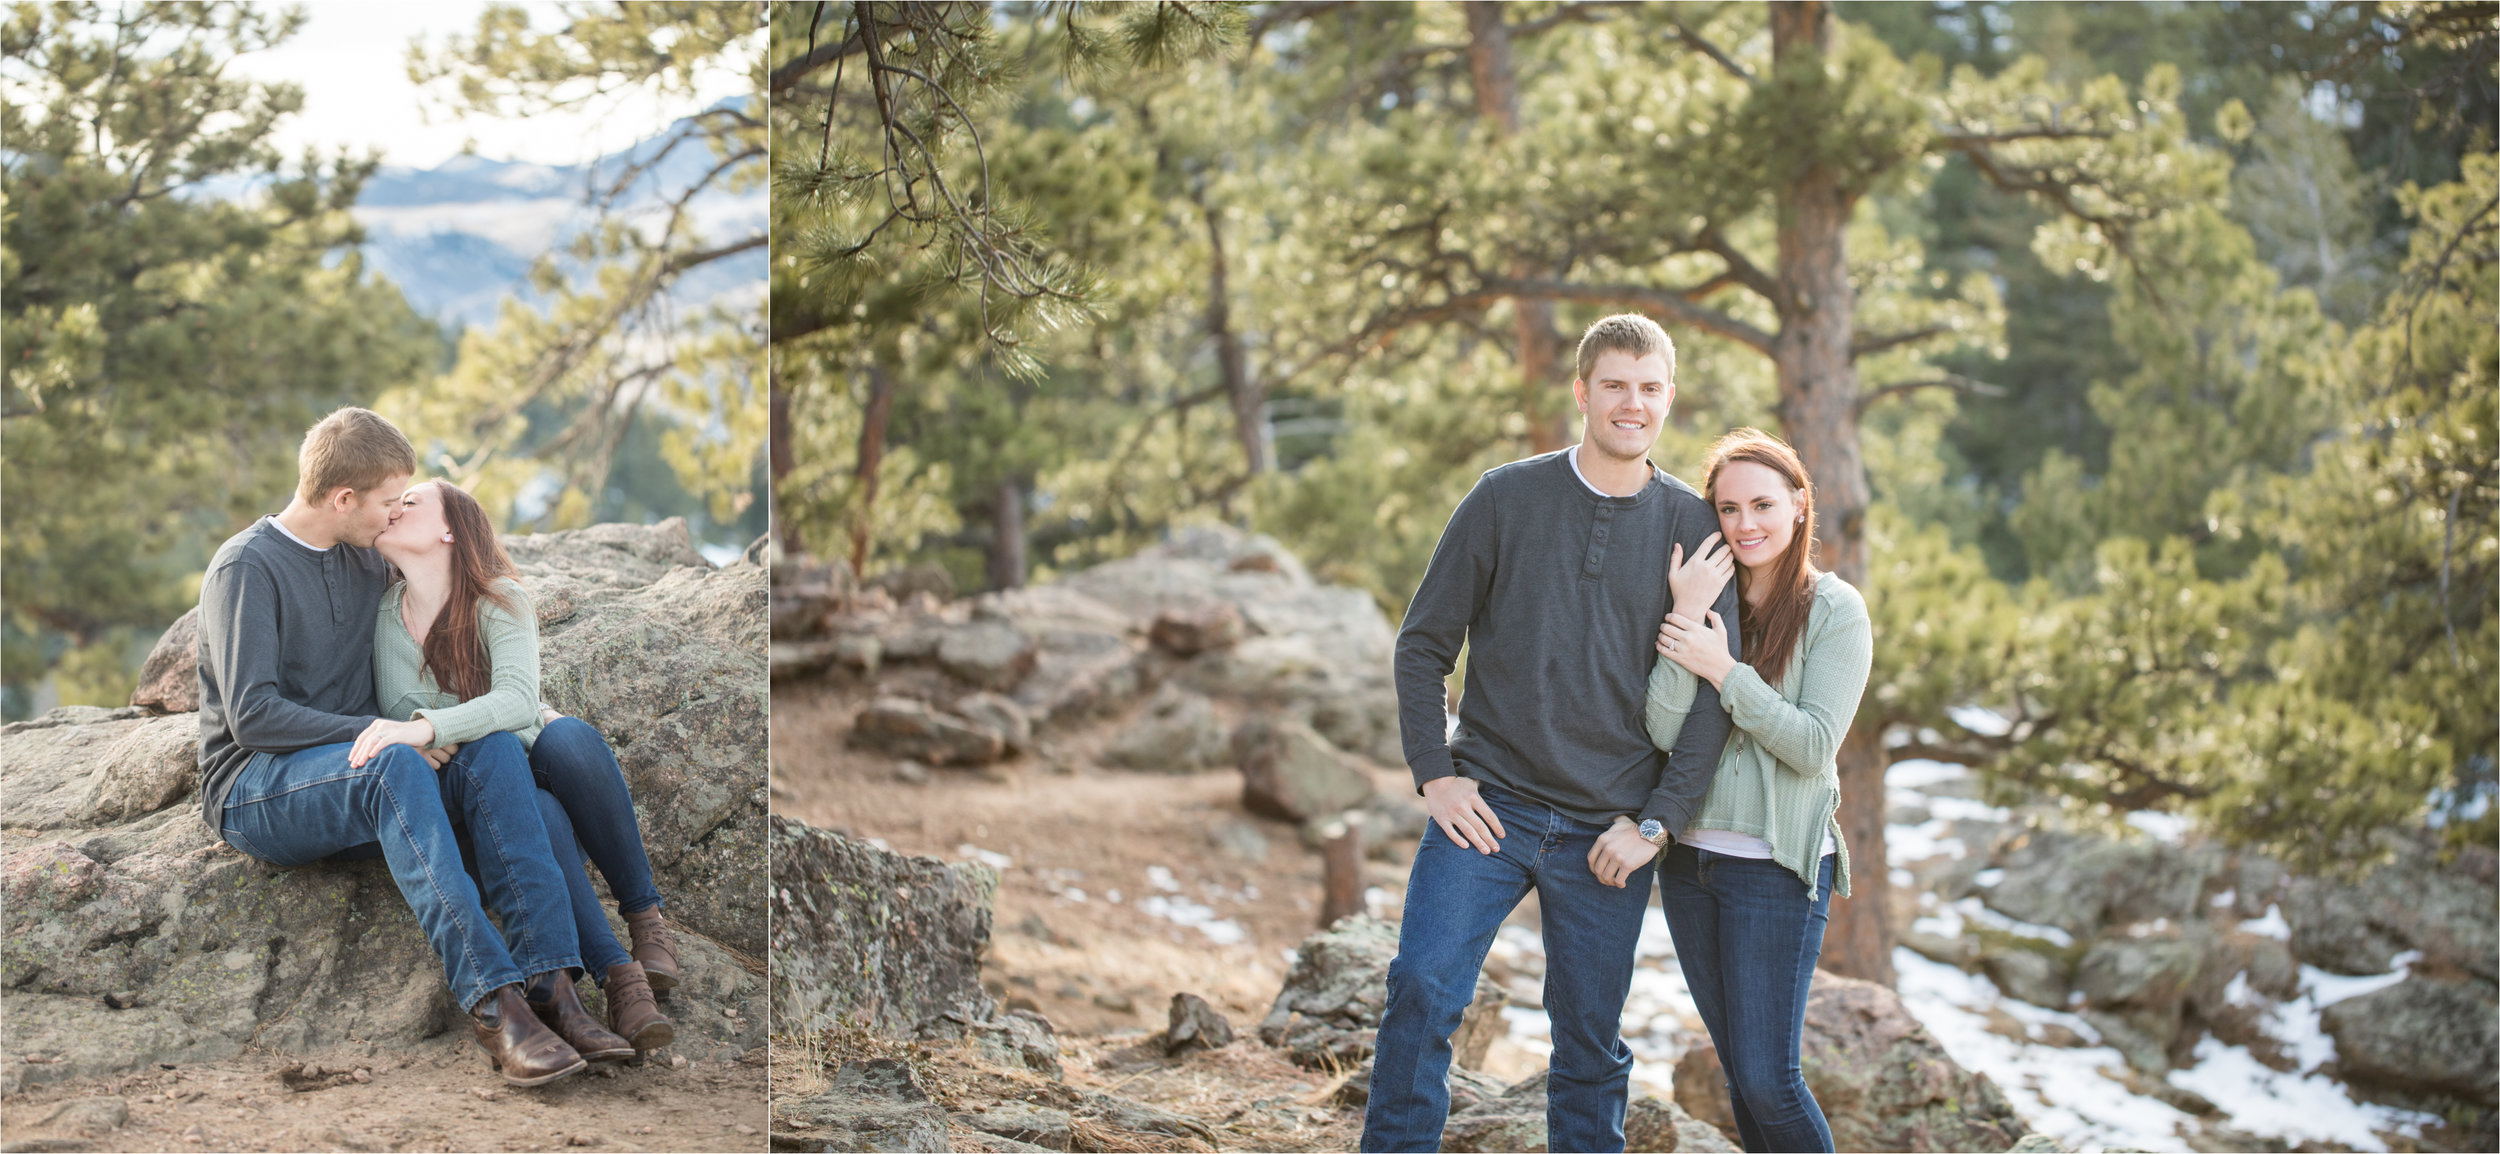 Sam & Garrett Engagement Lookout Mountain - 2.jpg